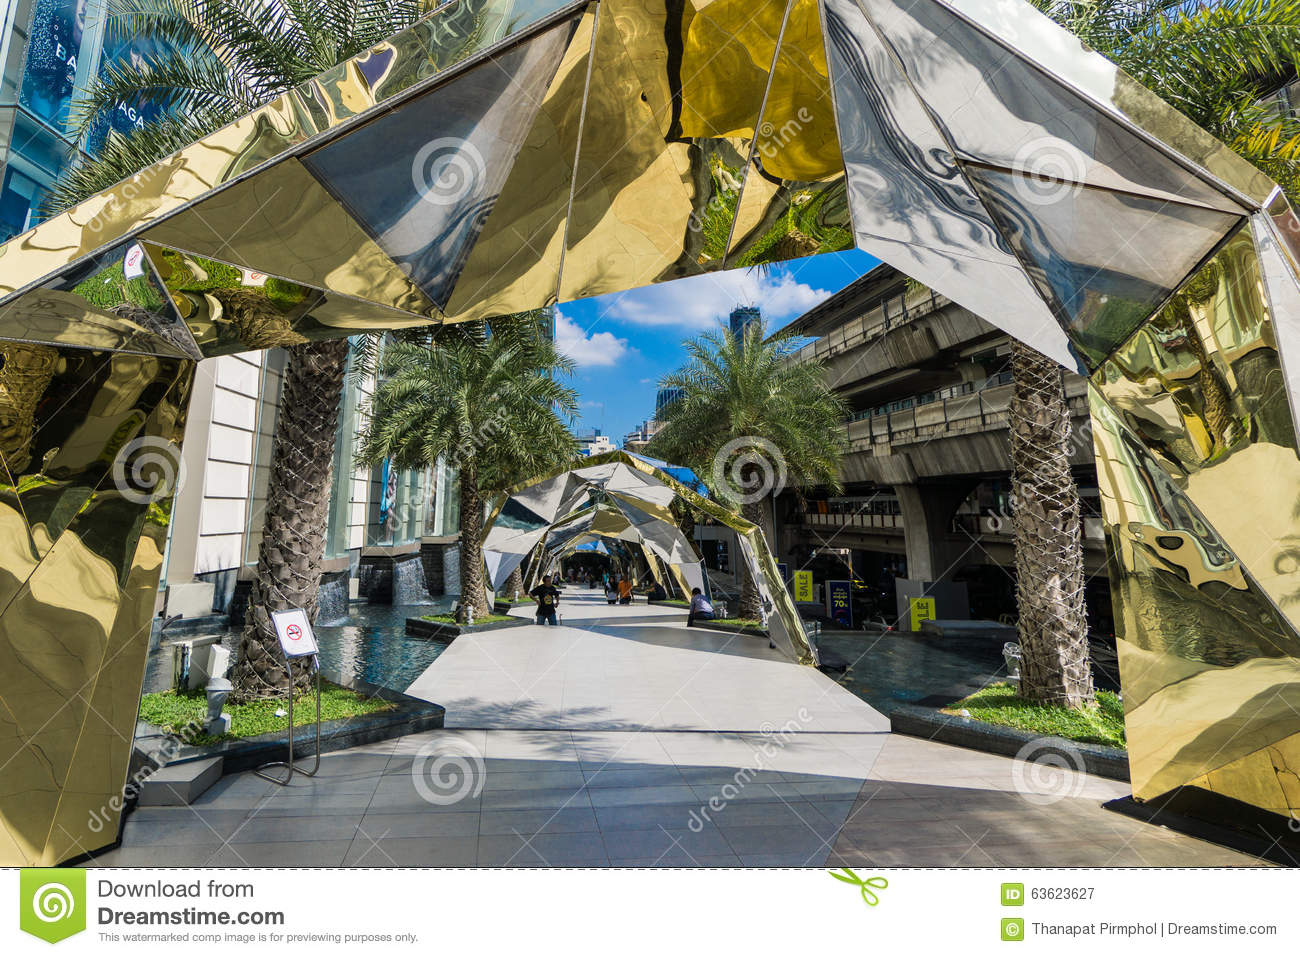 Bangkok, Thailand - 29 November 2015 : The Landscape of Siam Paragon (Luxury Shopping Mall at the Center of Bangkok) decorated for